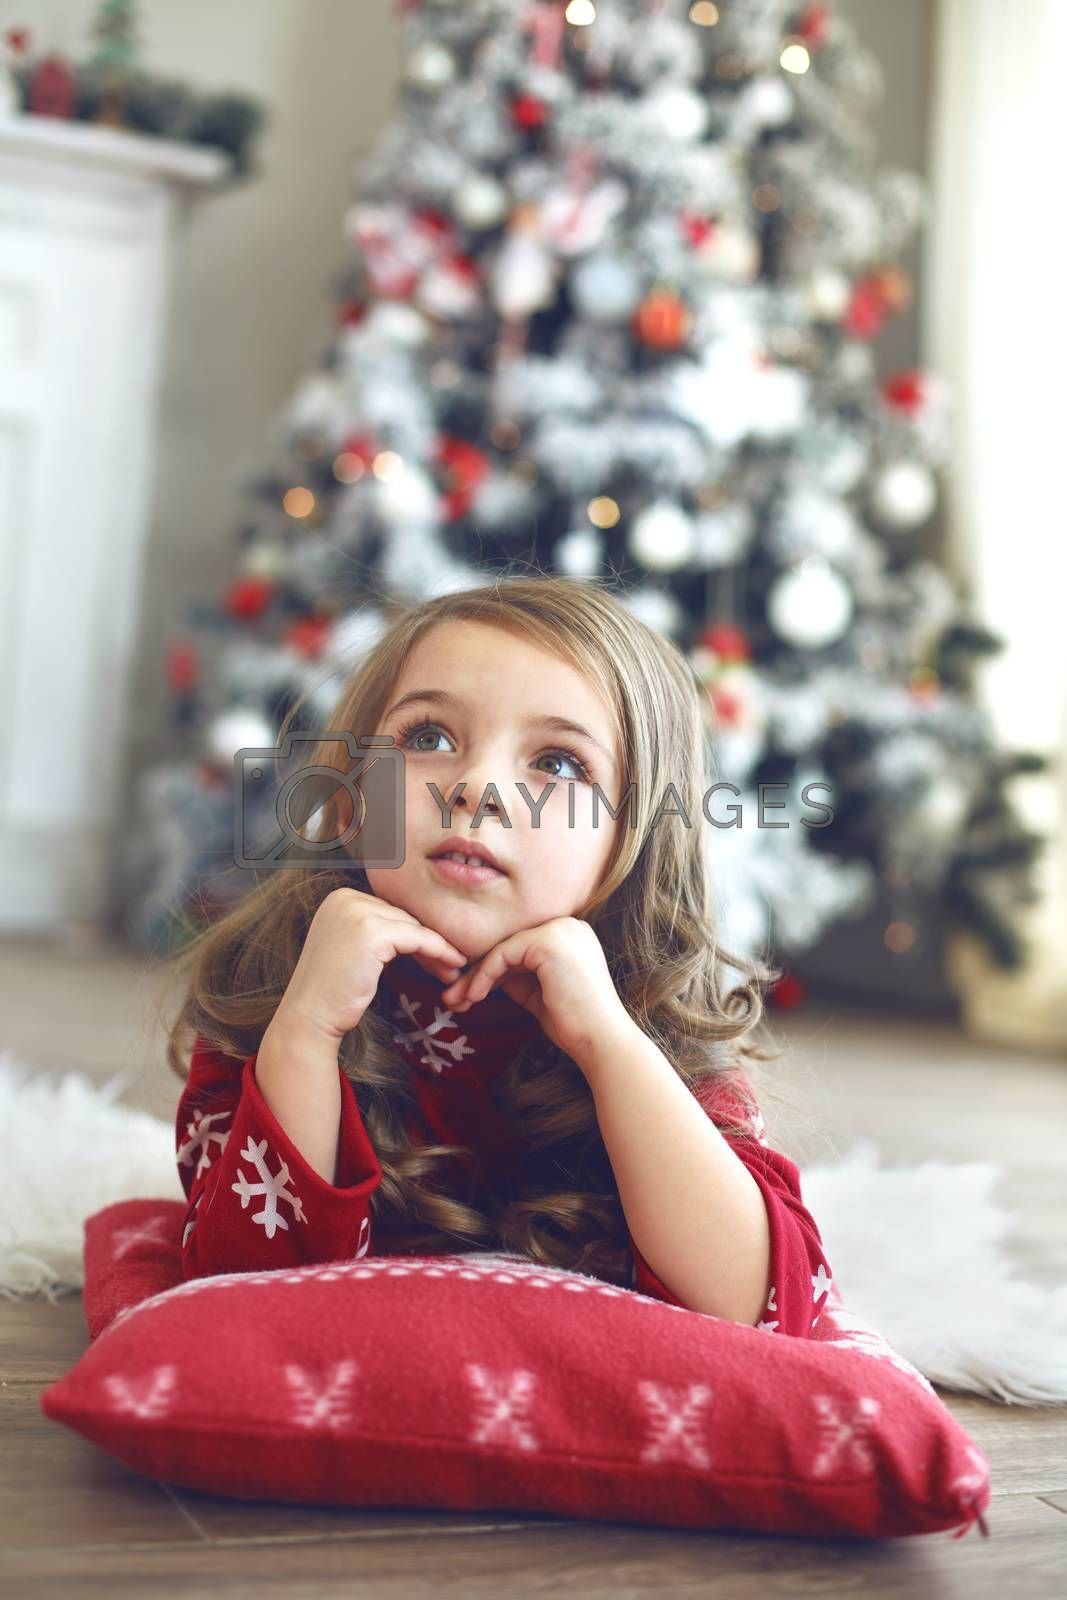 5 years old little girl laying down on soft cushion and looking up near Christmas tree at home